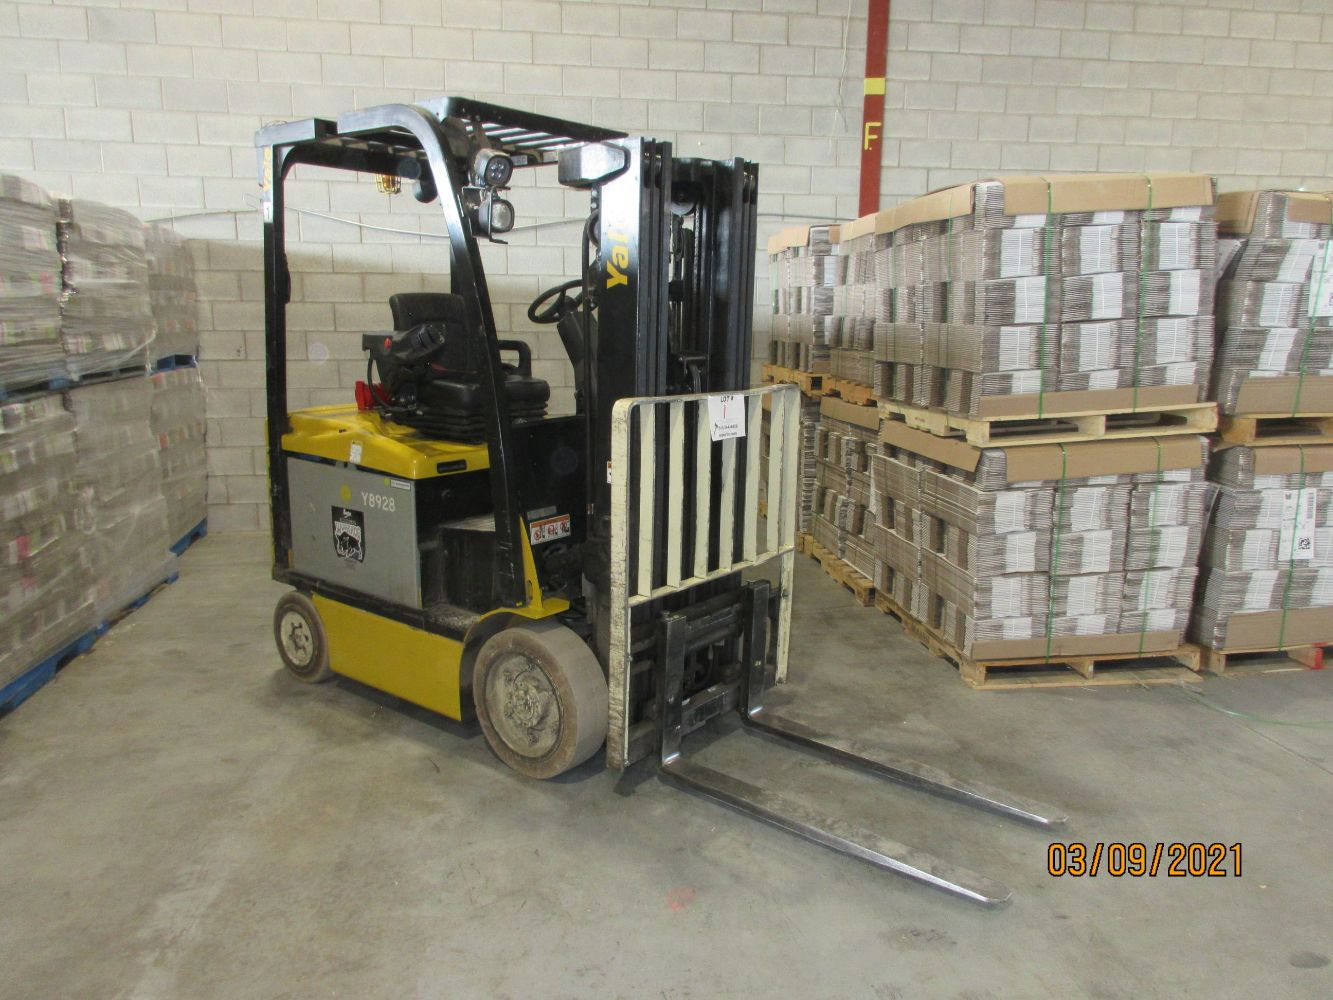 MINT OFF LEASE FORK LIFTS